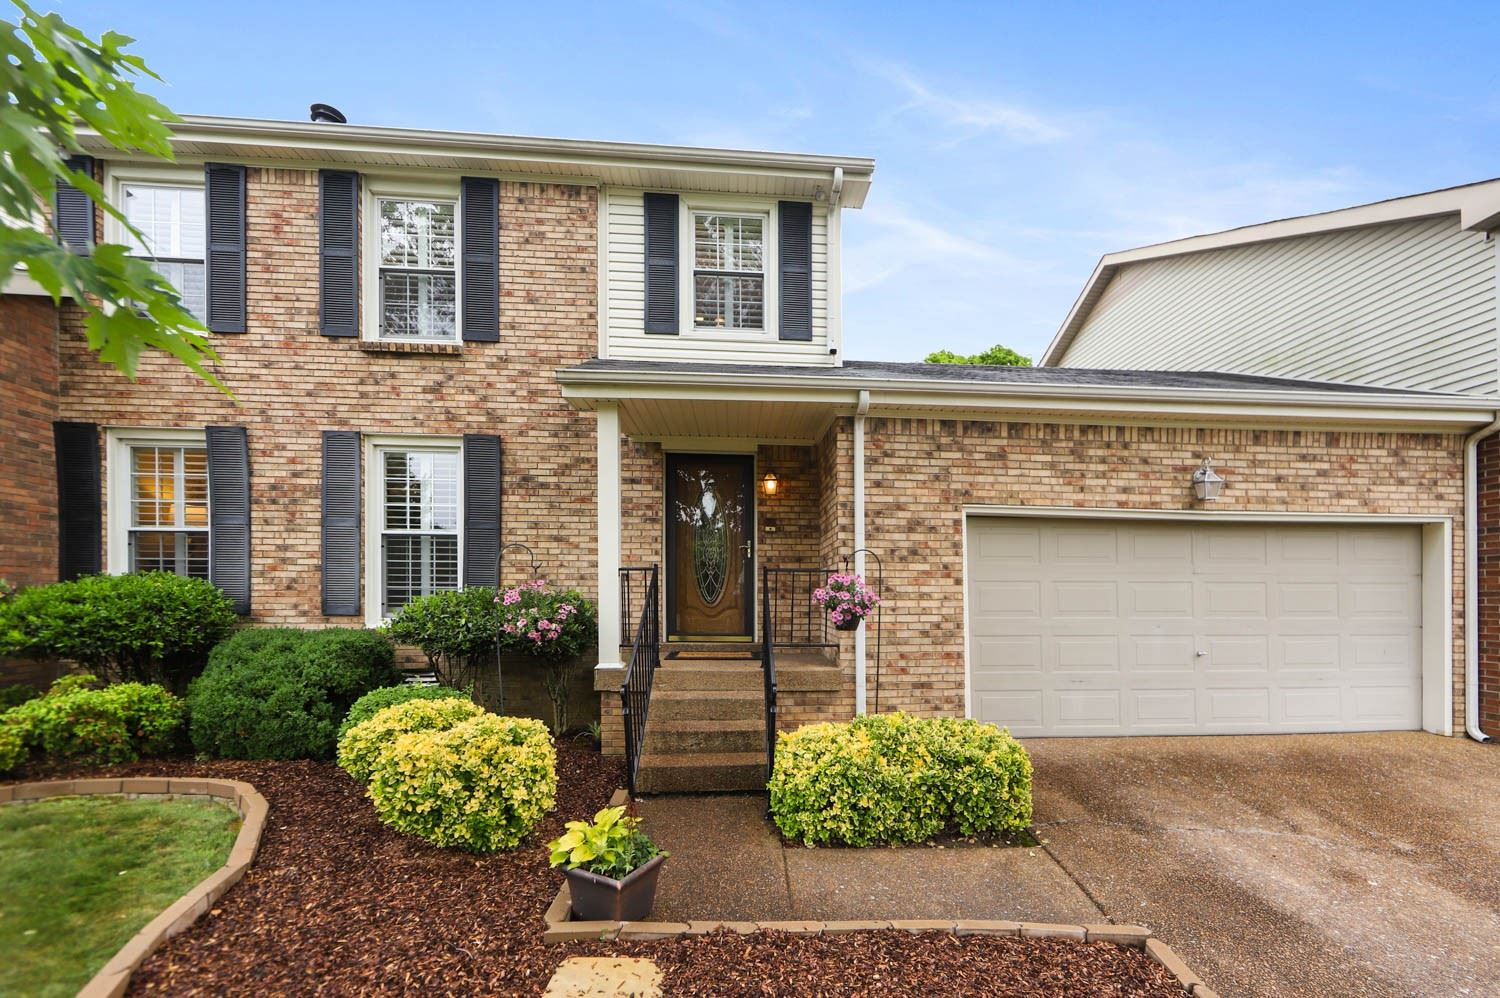 1604 Rosewood Ct, Brentwood, TN 37027 - MLS#: 2274219